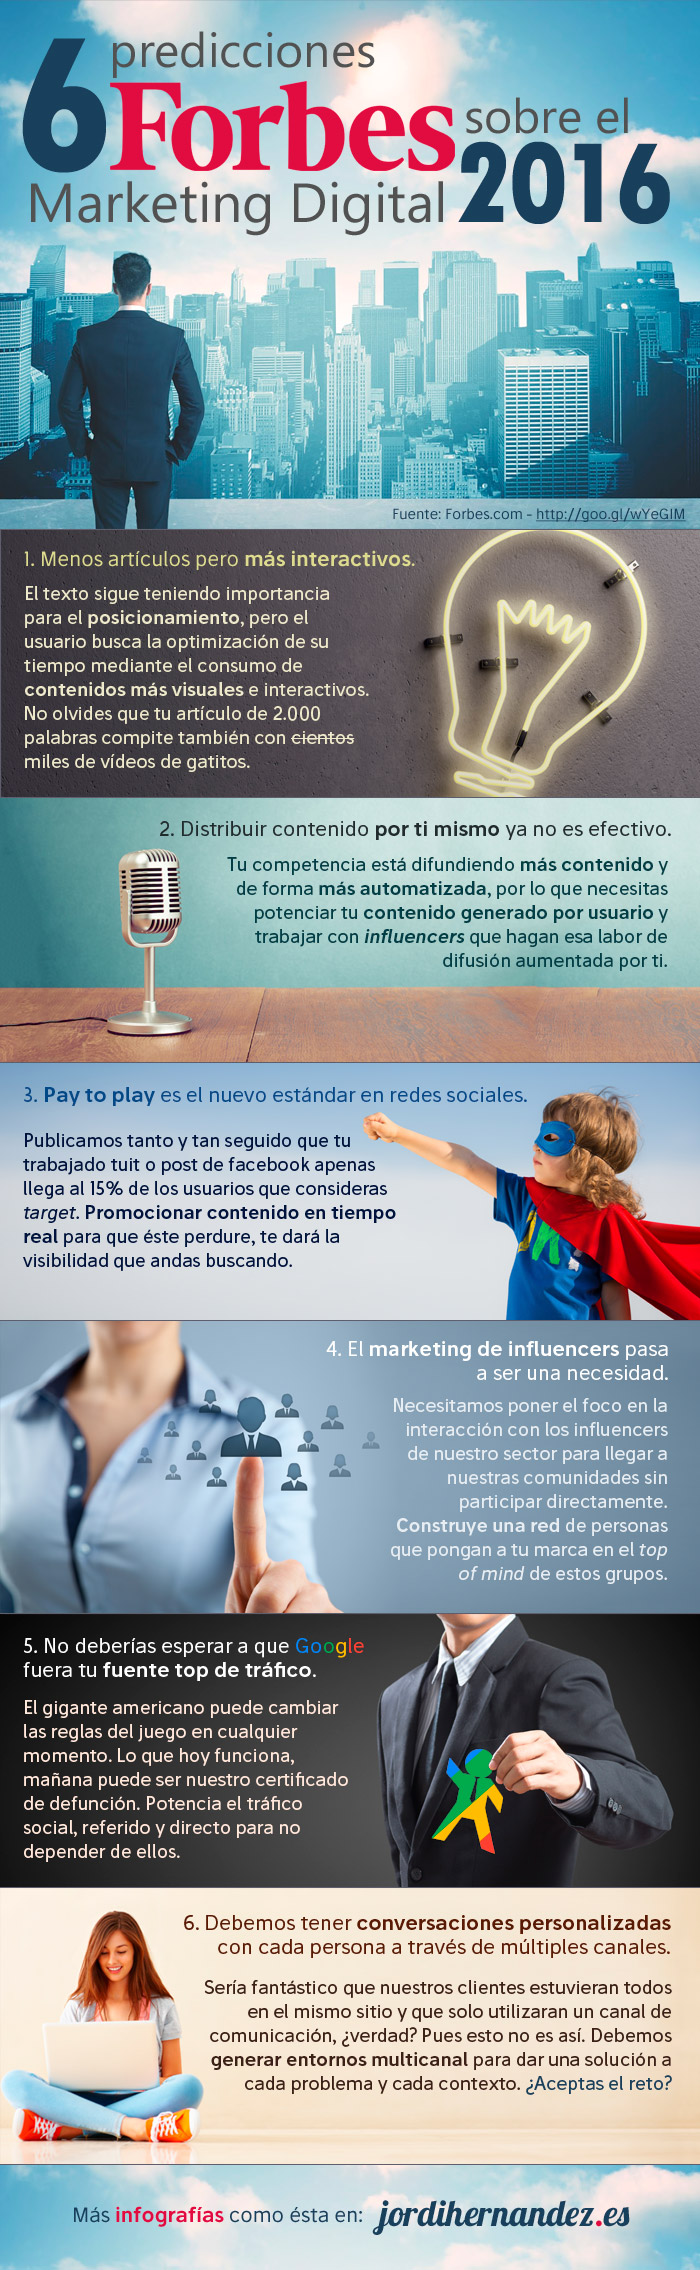 6 predicciones de Forbes sobre Marketing Digital para 2016